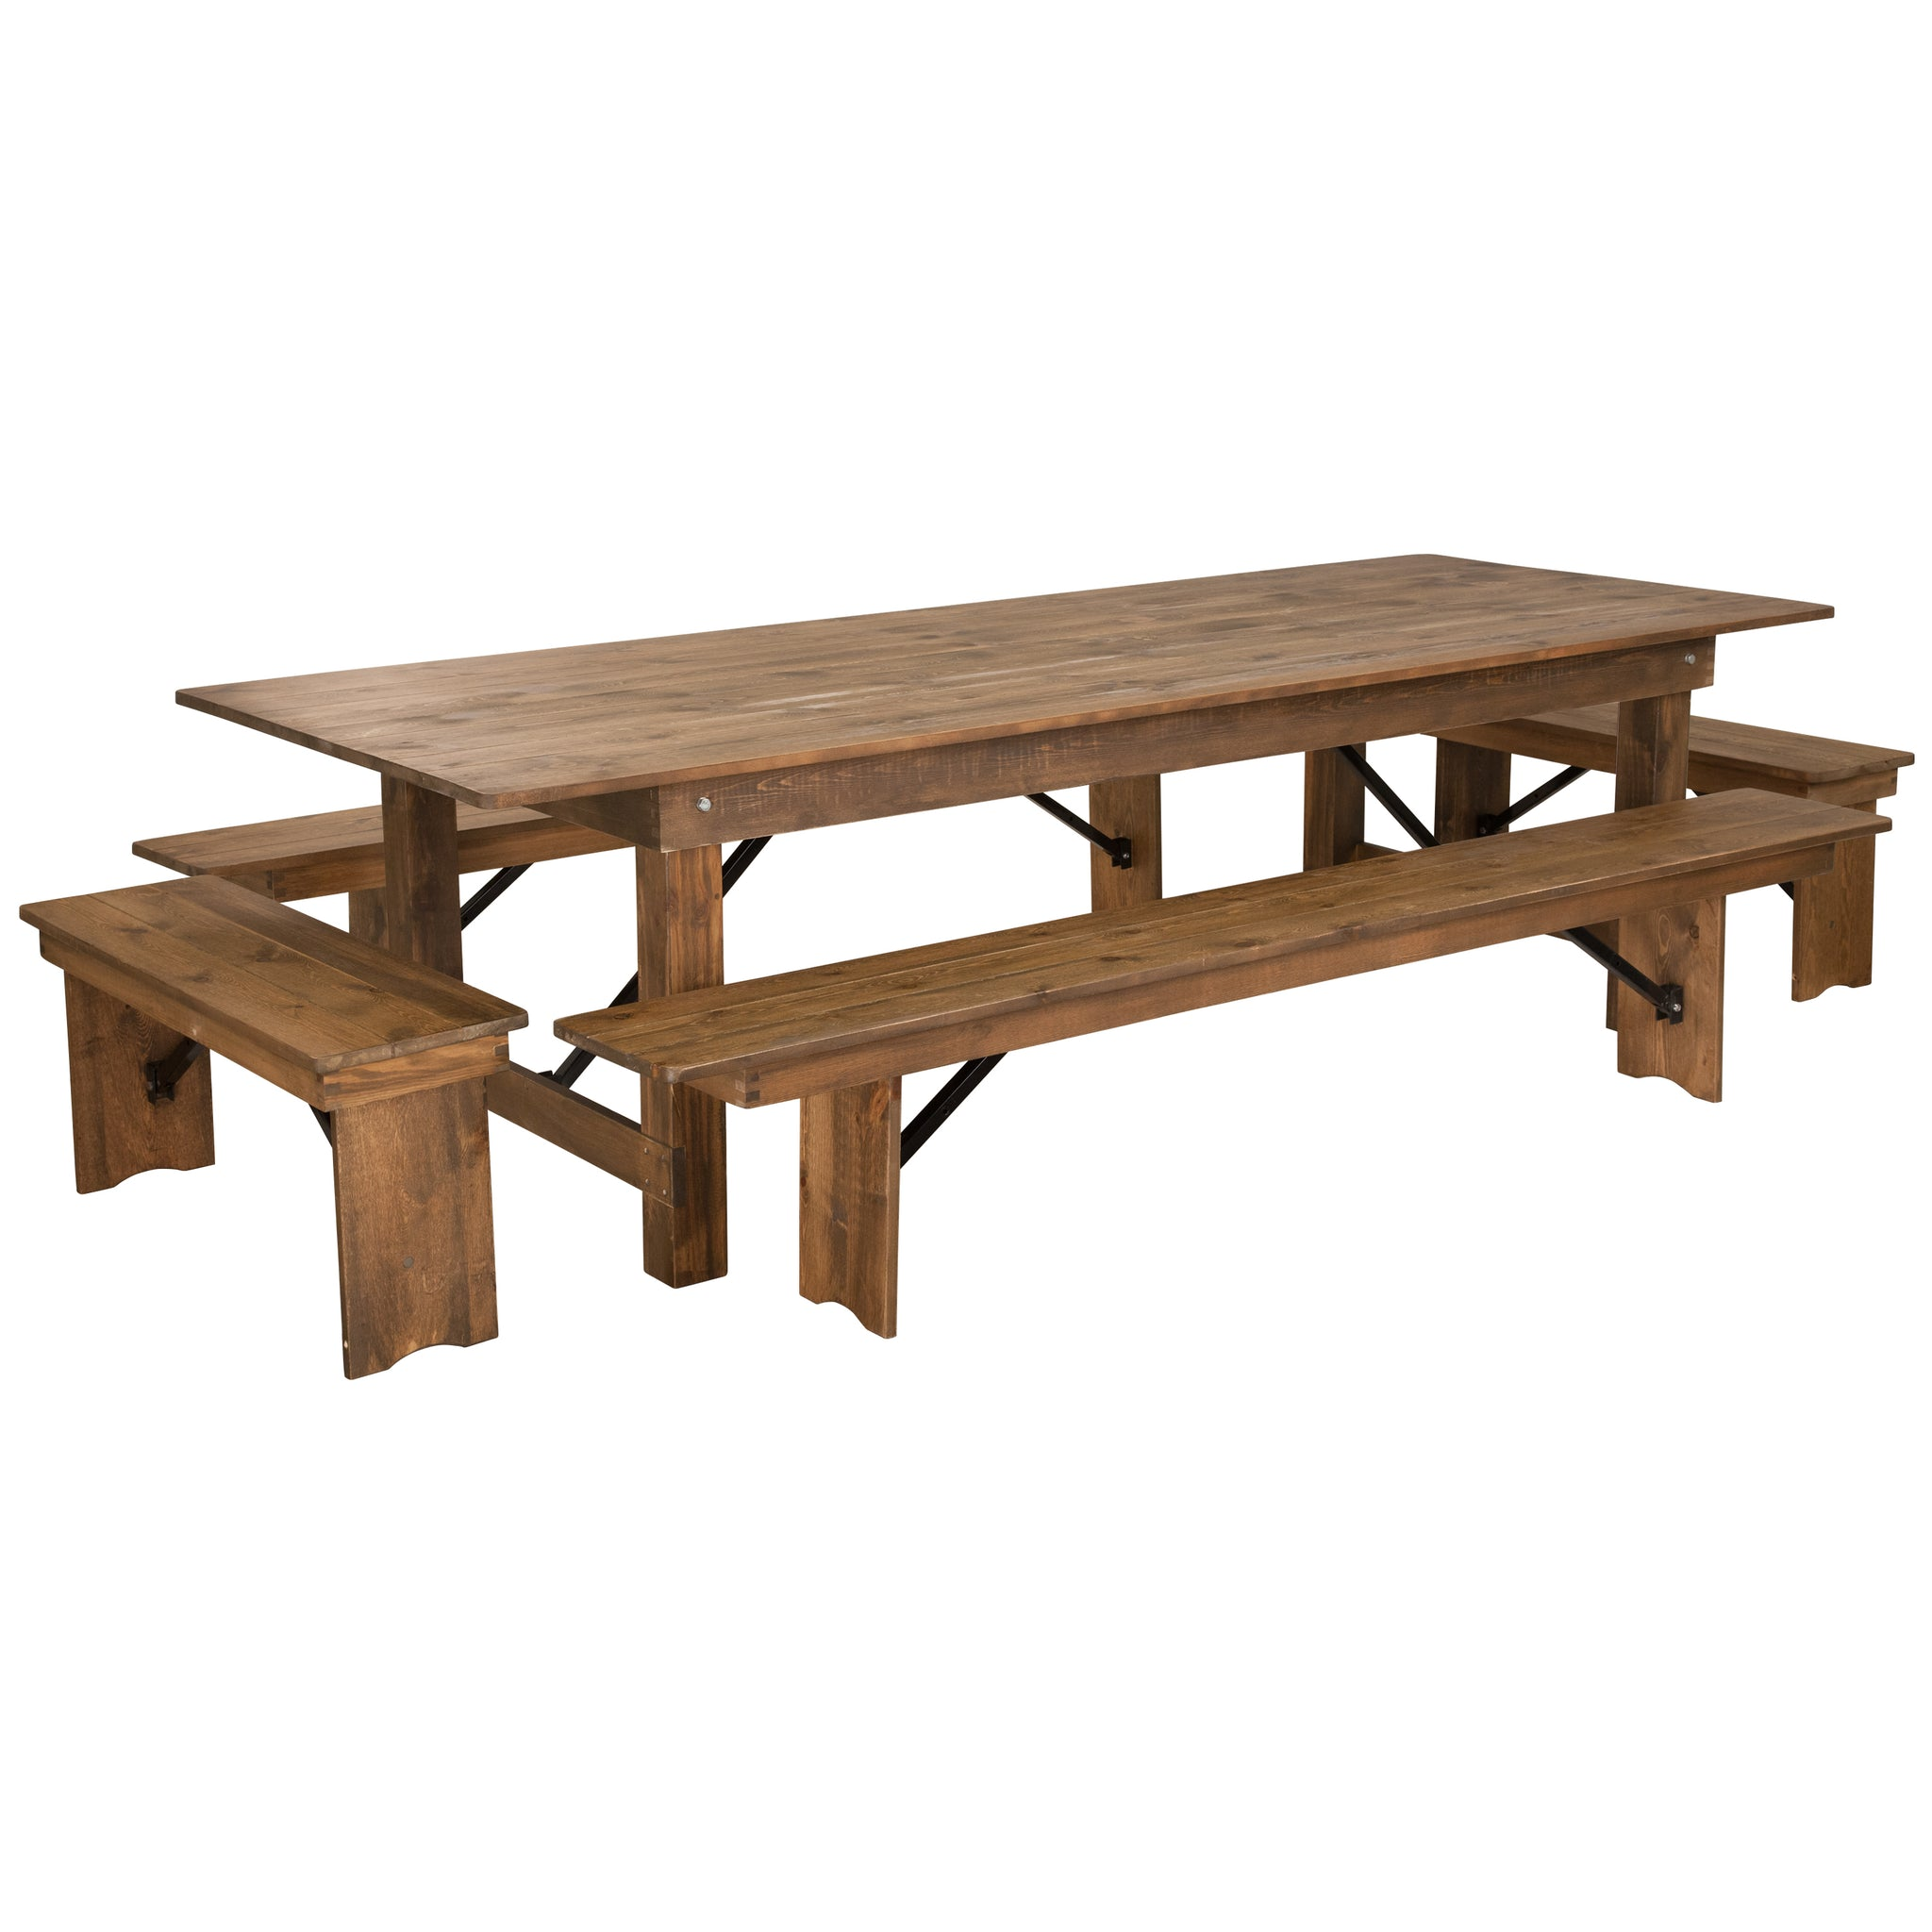 "HERCULES Series 9' x 40"""" Folding Farm Table and Four Bench Set: Antique Rustic"